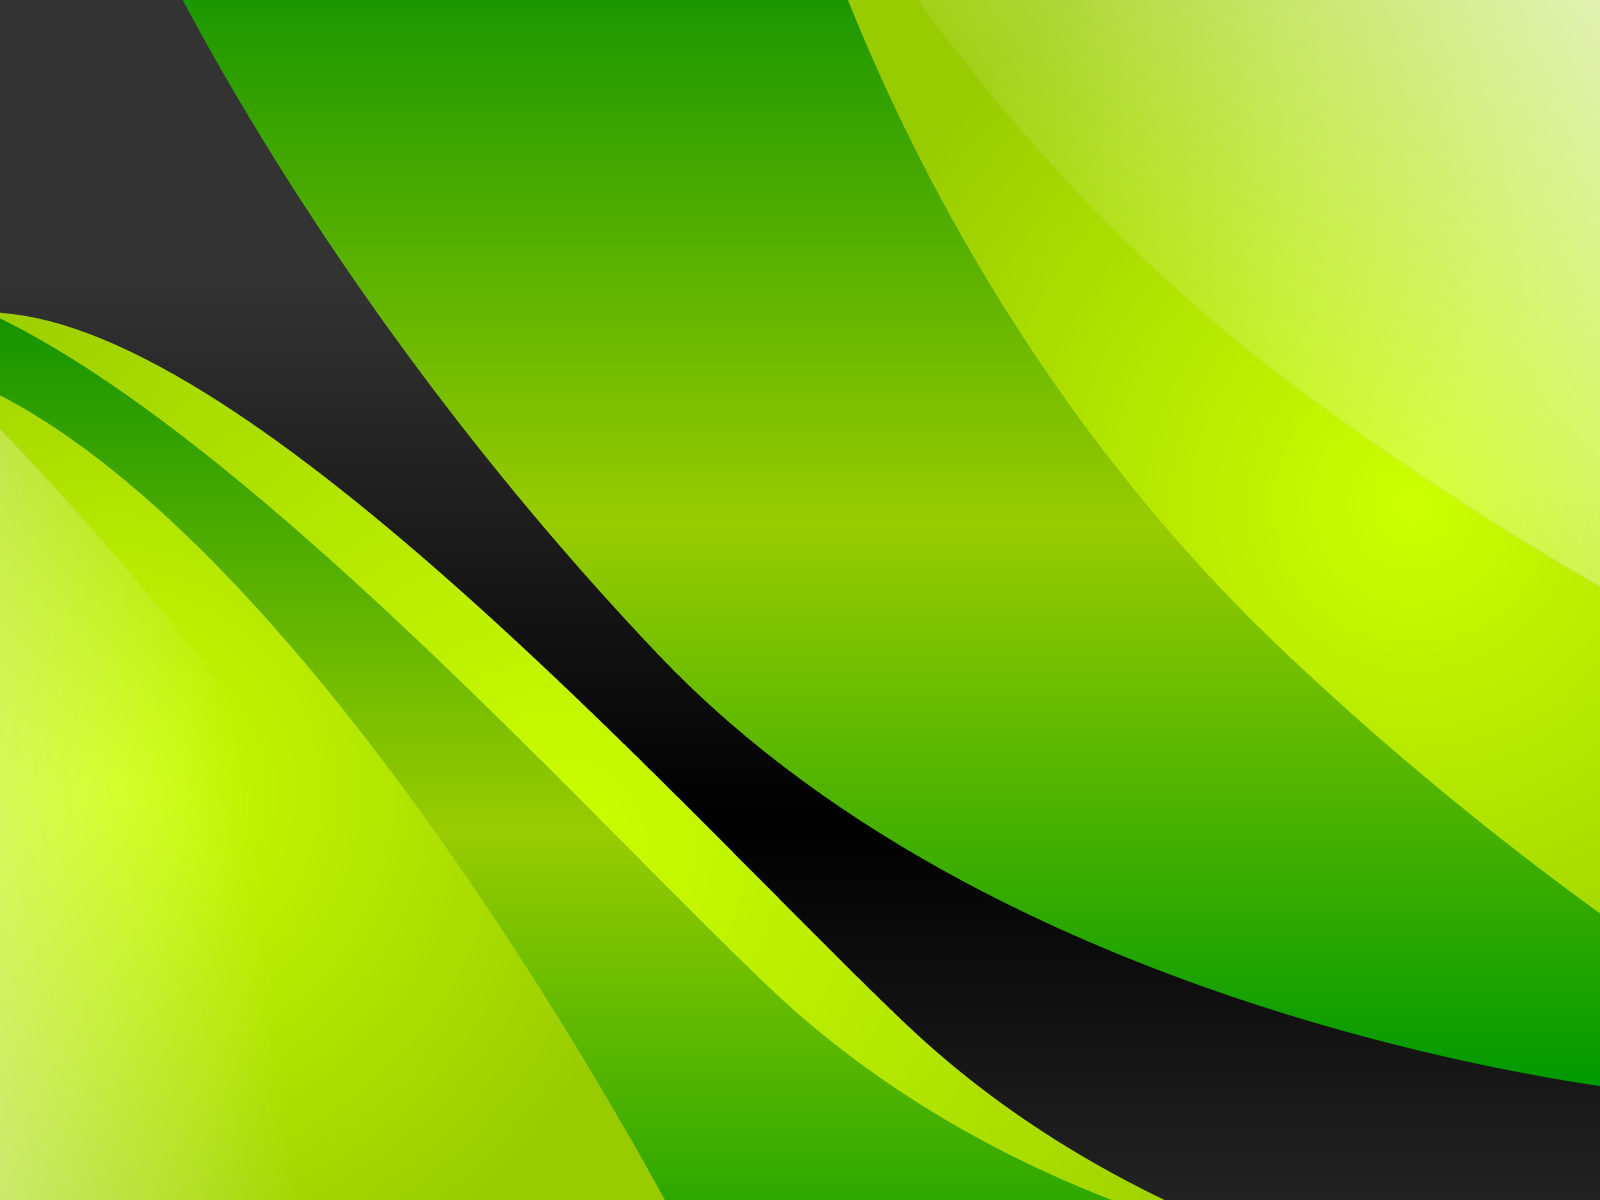 Black and White Wallpapers: Green-Yellow Abstract Wallpaper